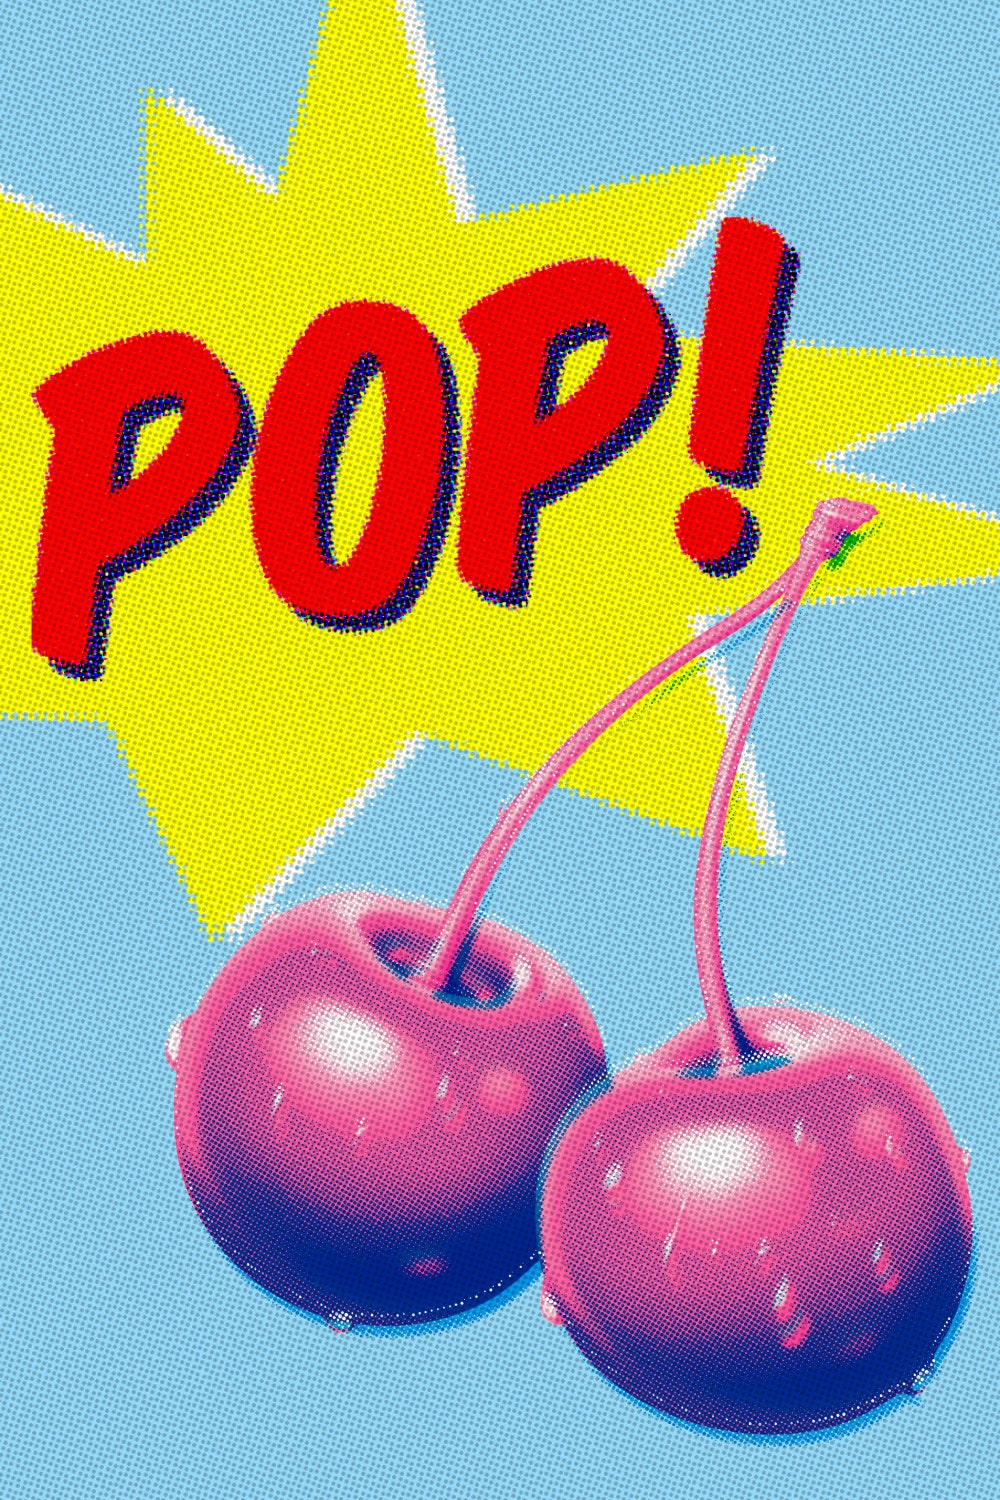 every does pop cherry girls